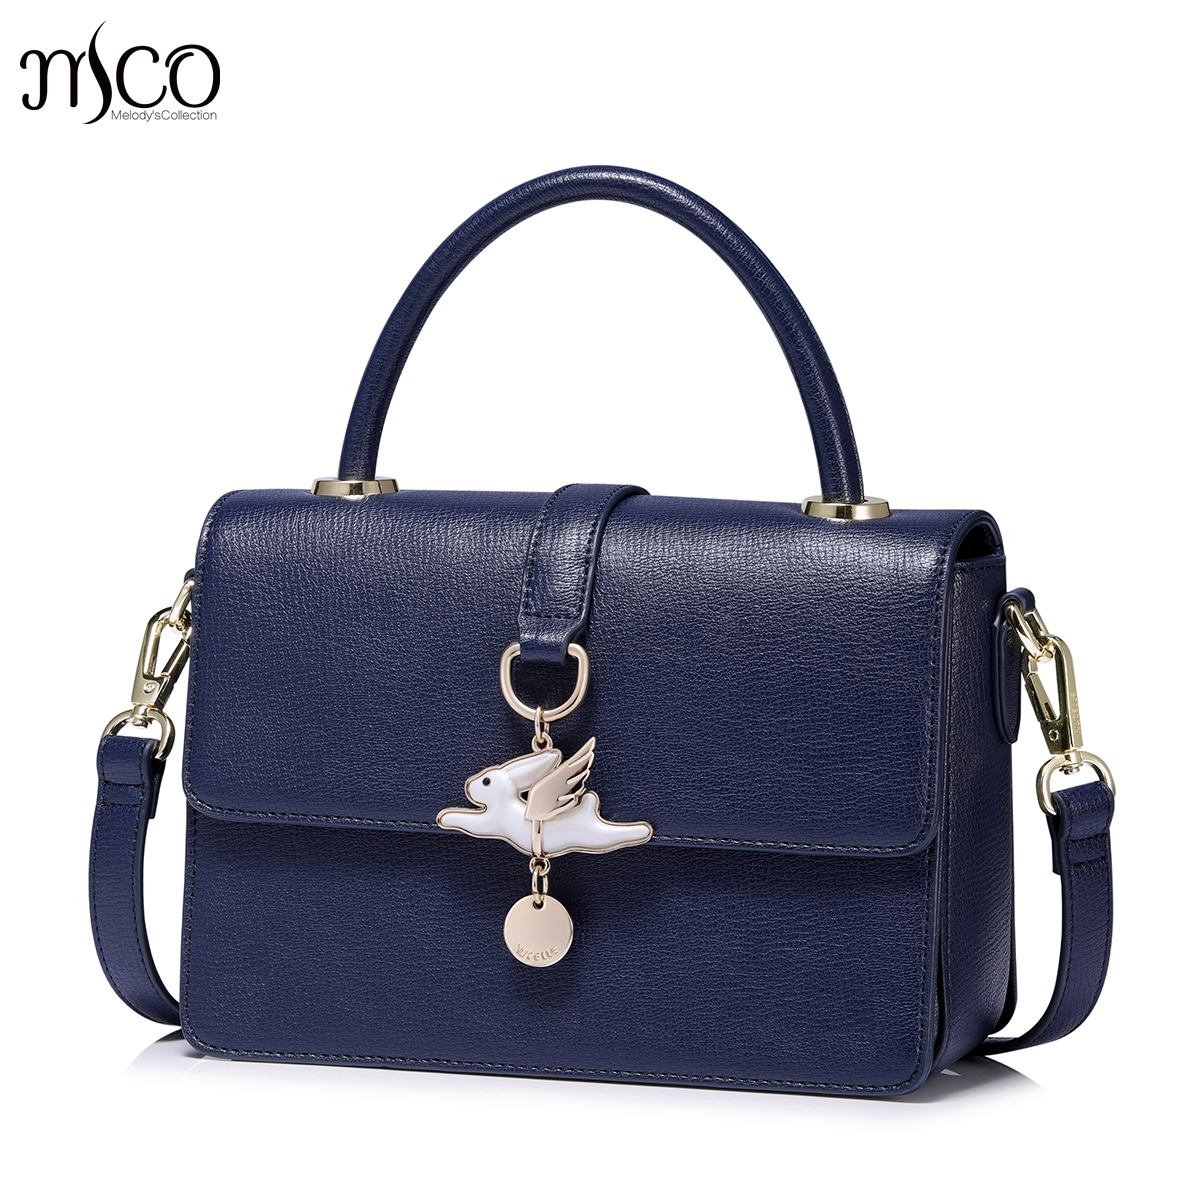 leather luxury handbags women bags designer rabbit  shoulder bags crossbody bags for Girls Sac a Main femme de marque luxury handbags women bags designer brands women shoulder bag fashion vintage leather handbag sac a main femme de marque a0296